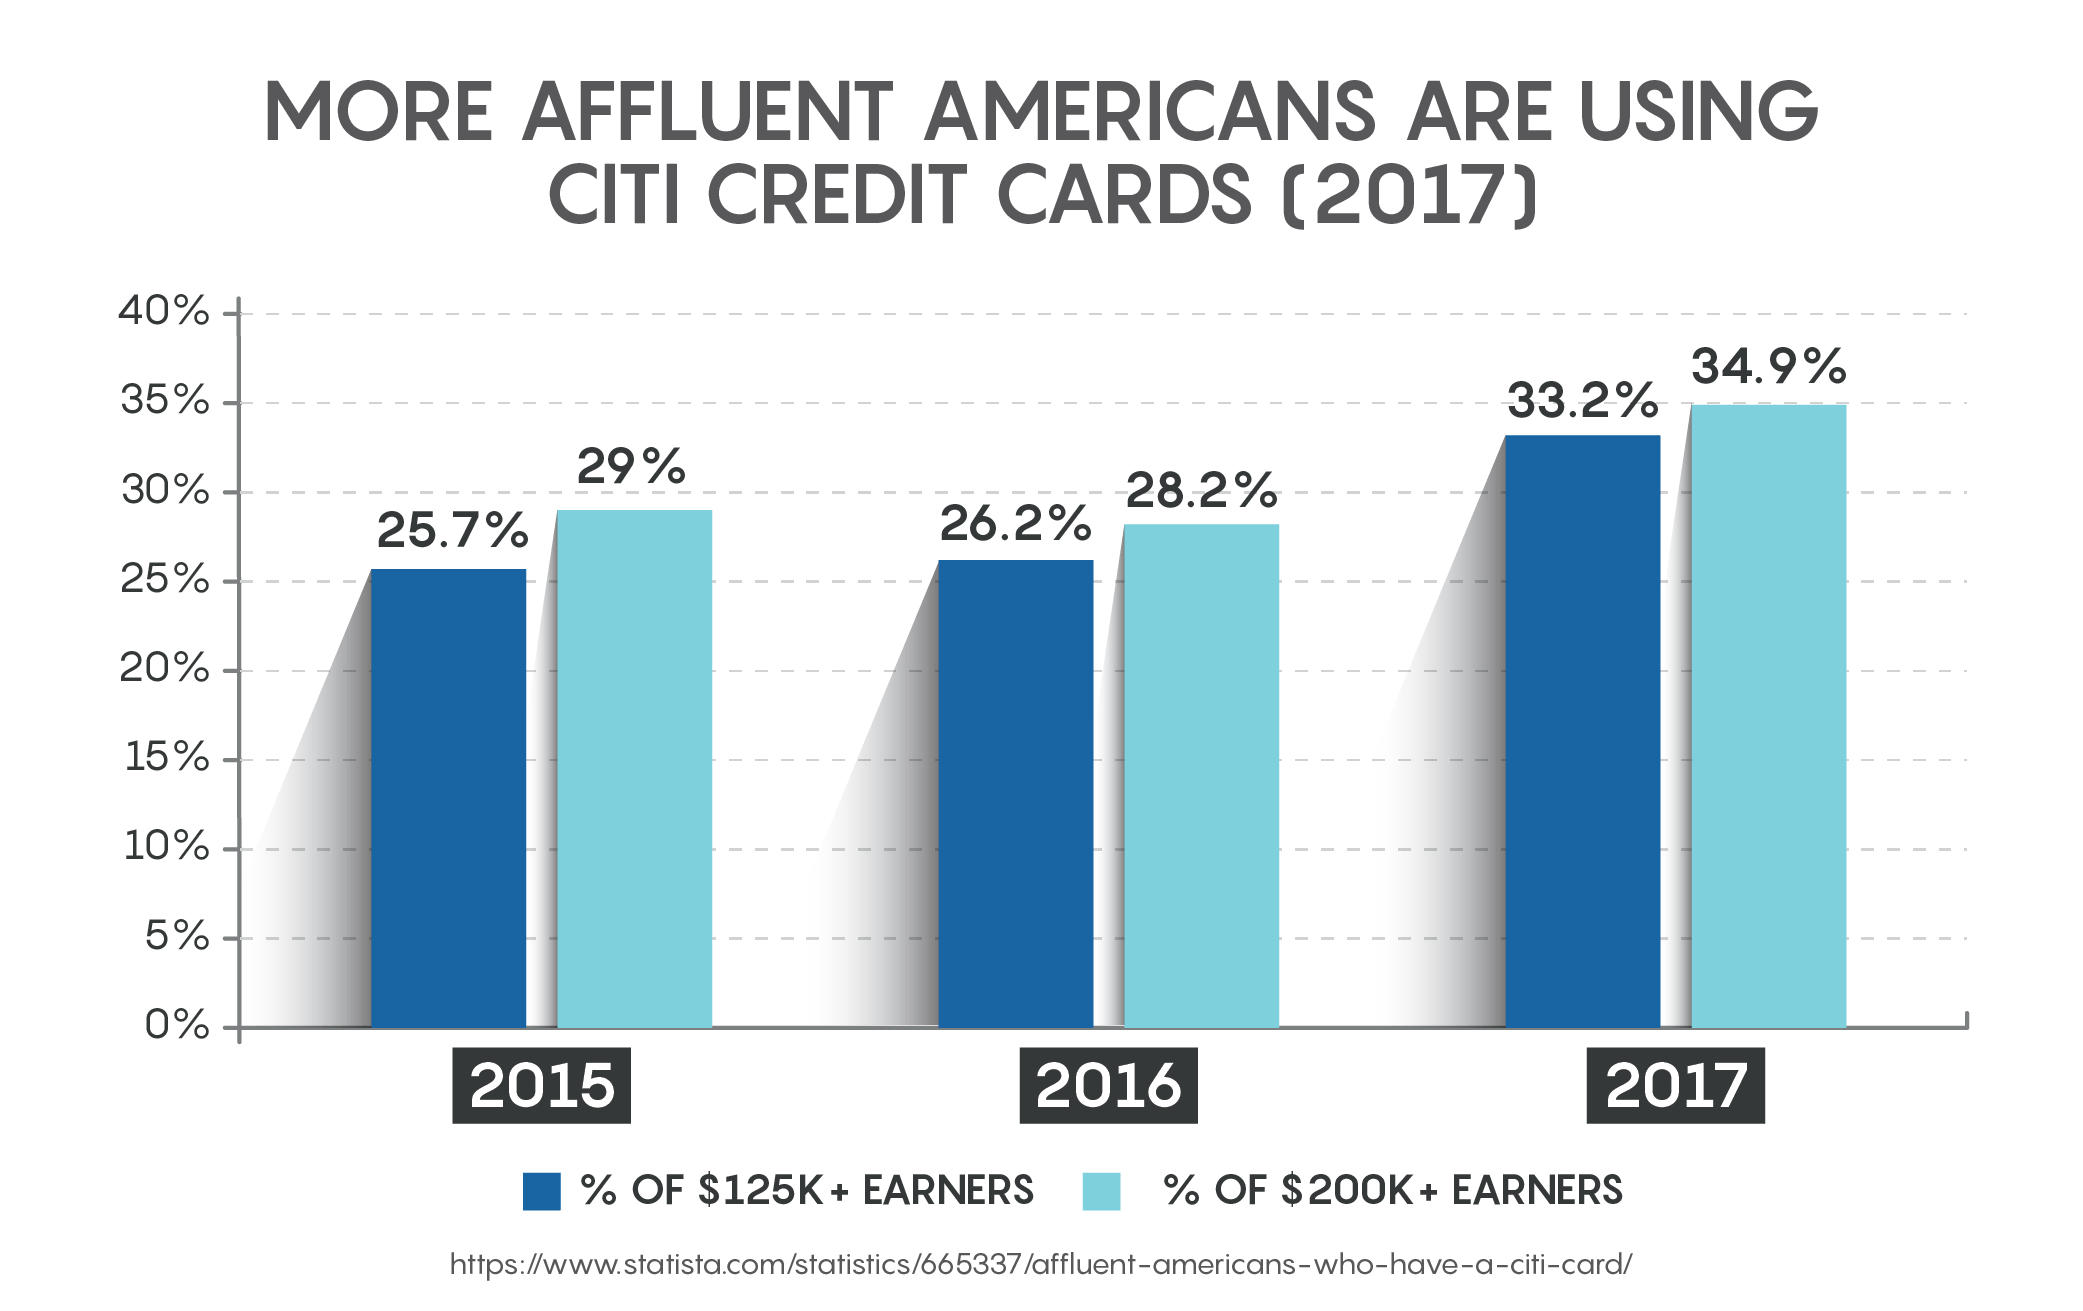 More Affluent Americans Are Using Citi Credit Cards 2017